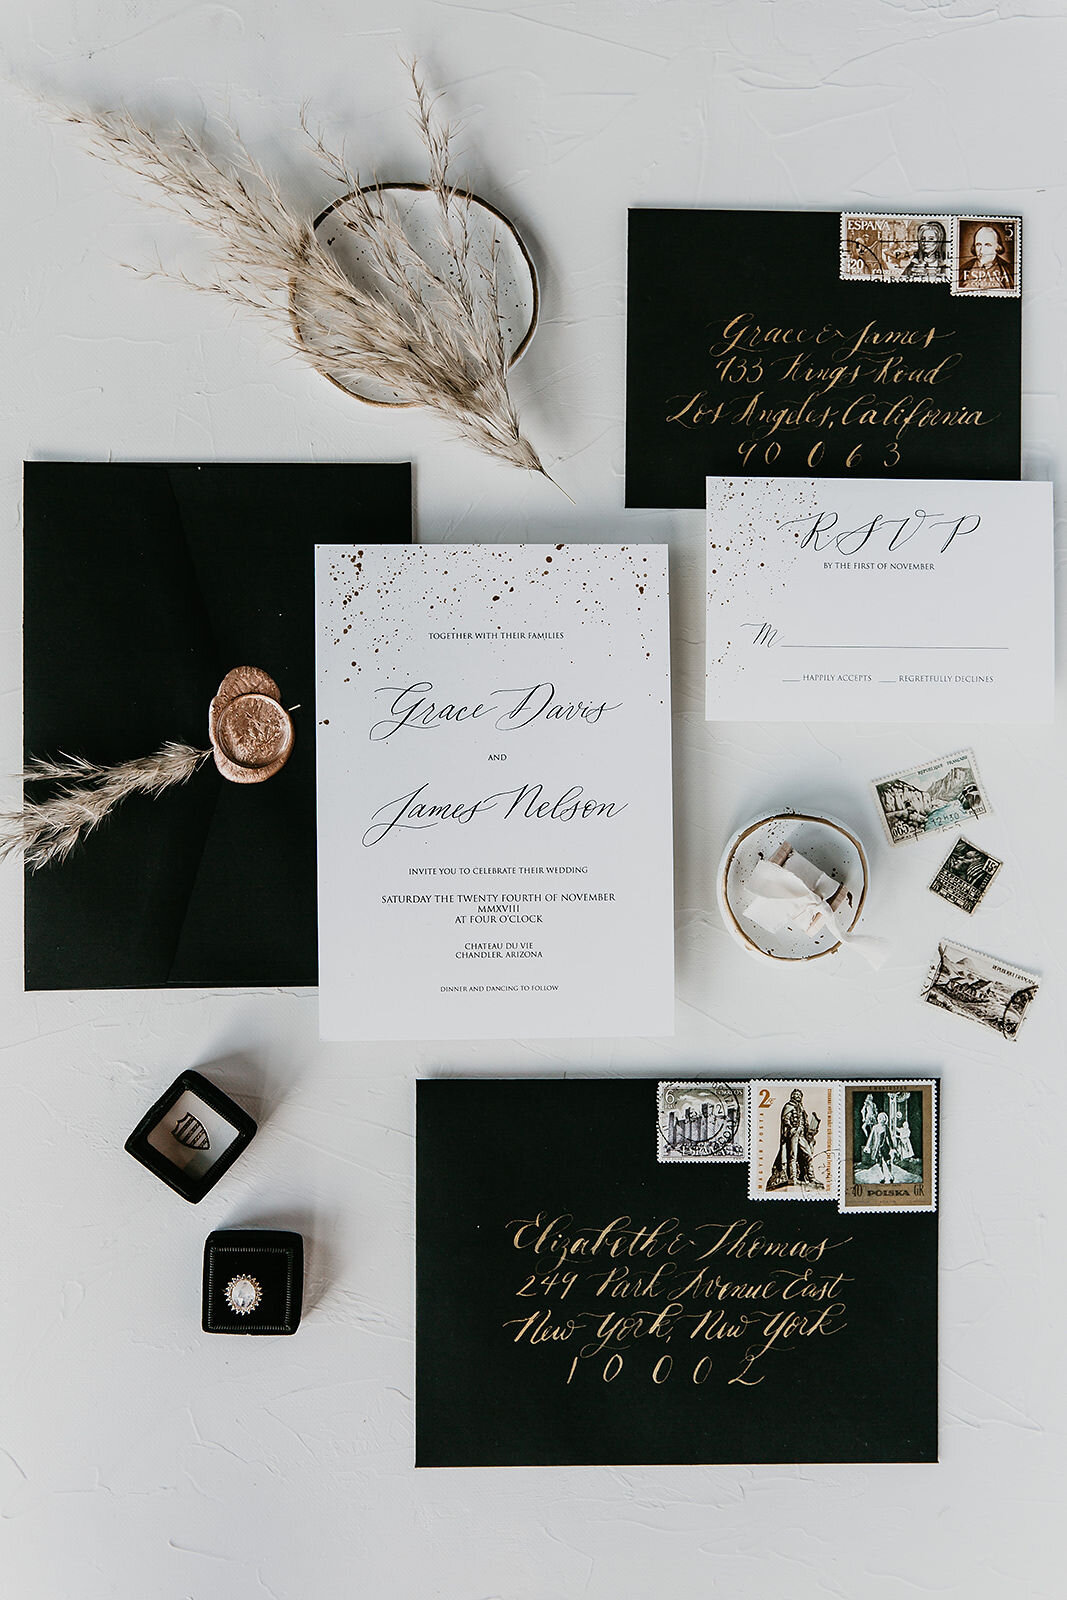 How to Plan a Themed Wedding Without Going Over the Top - on the Bronte Bride Blog